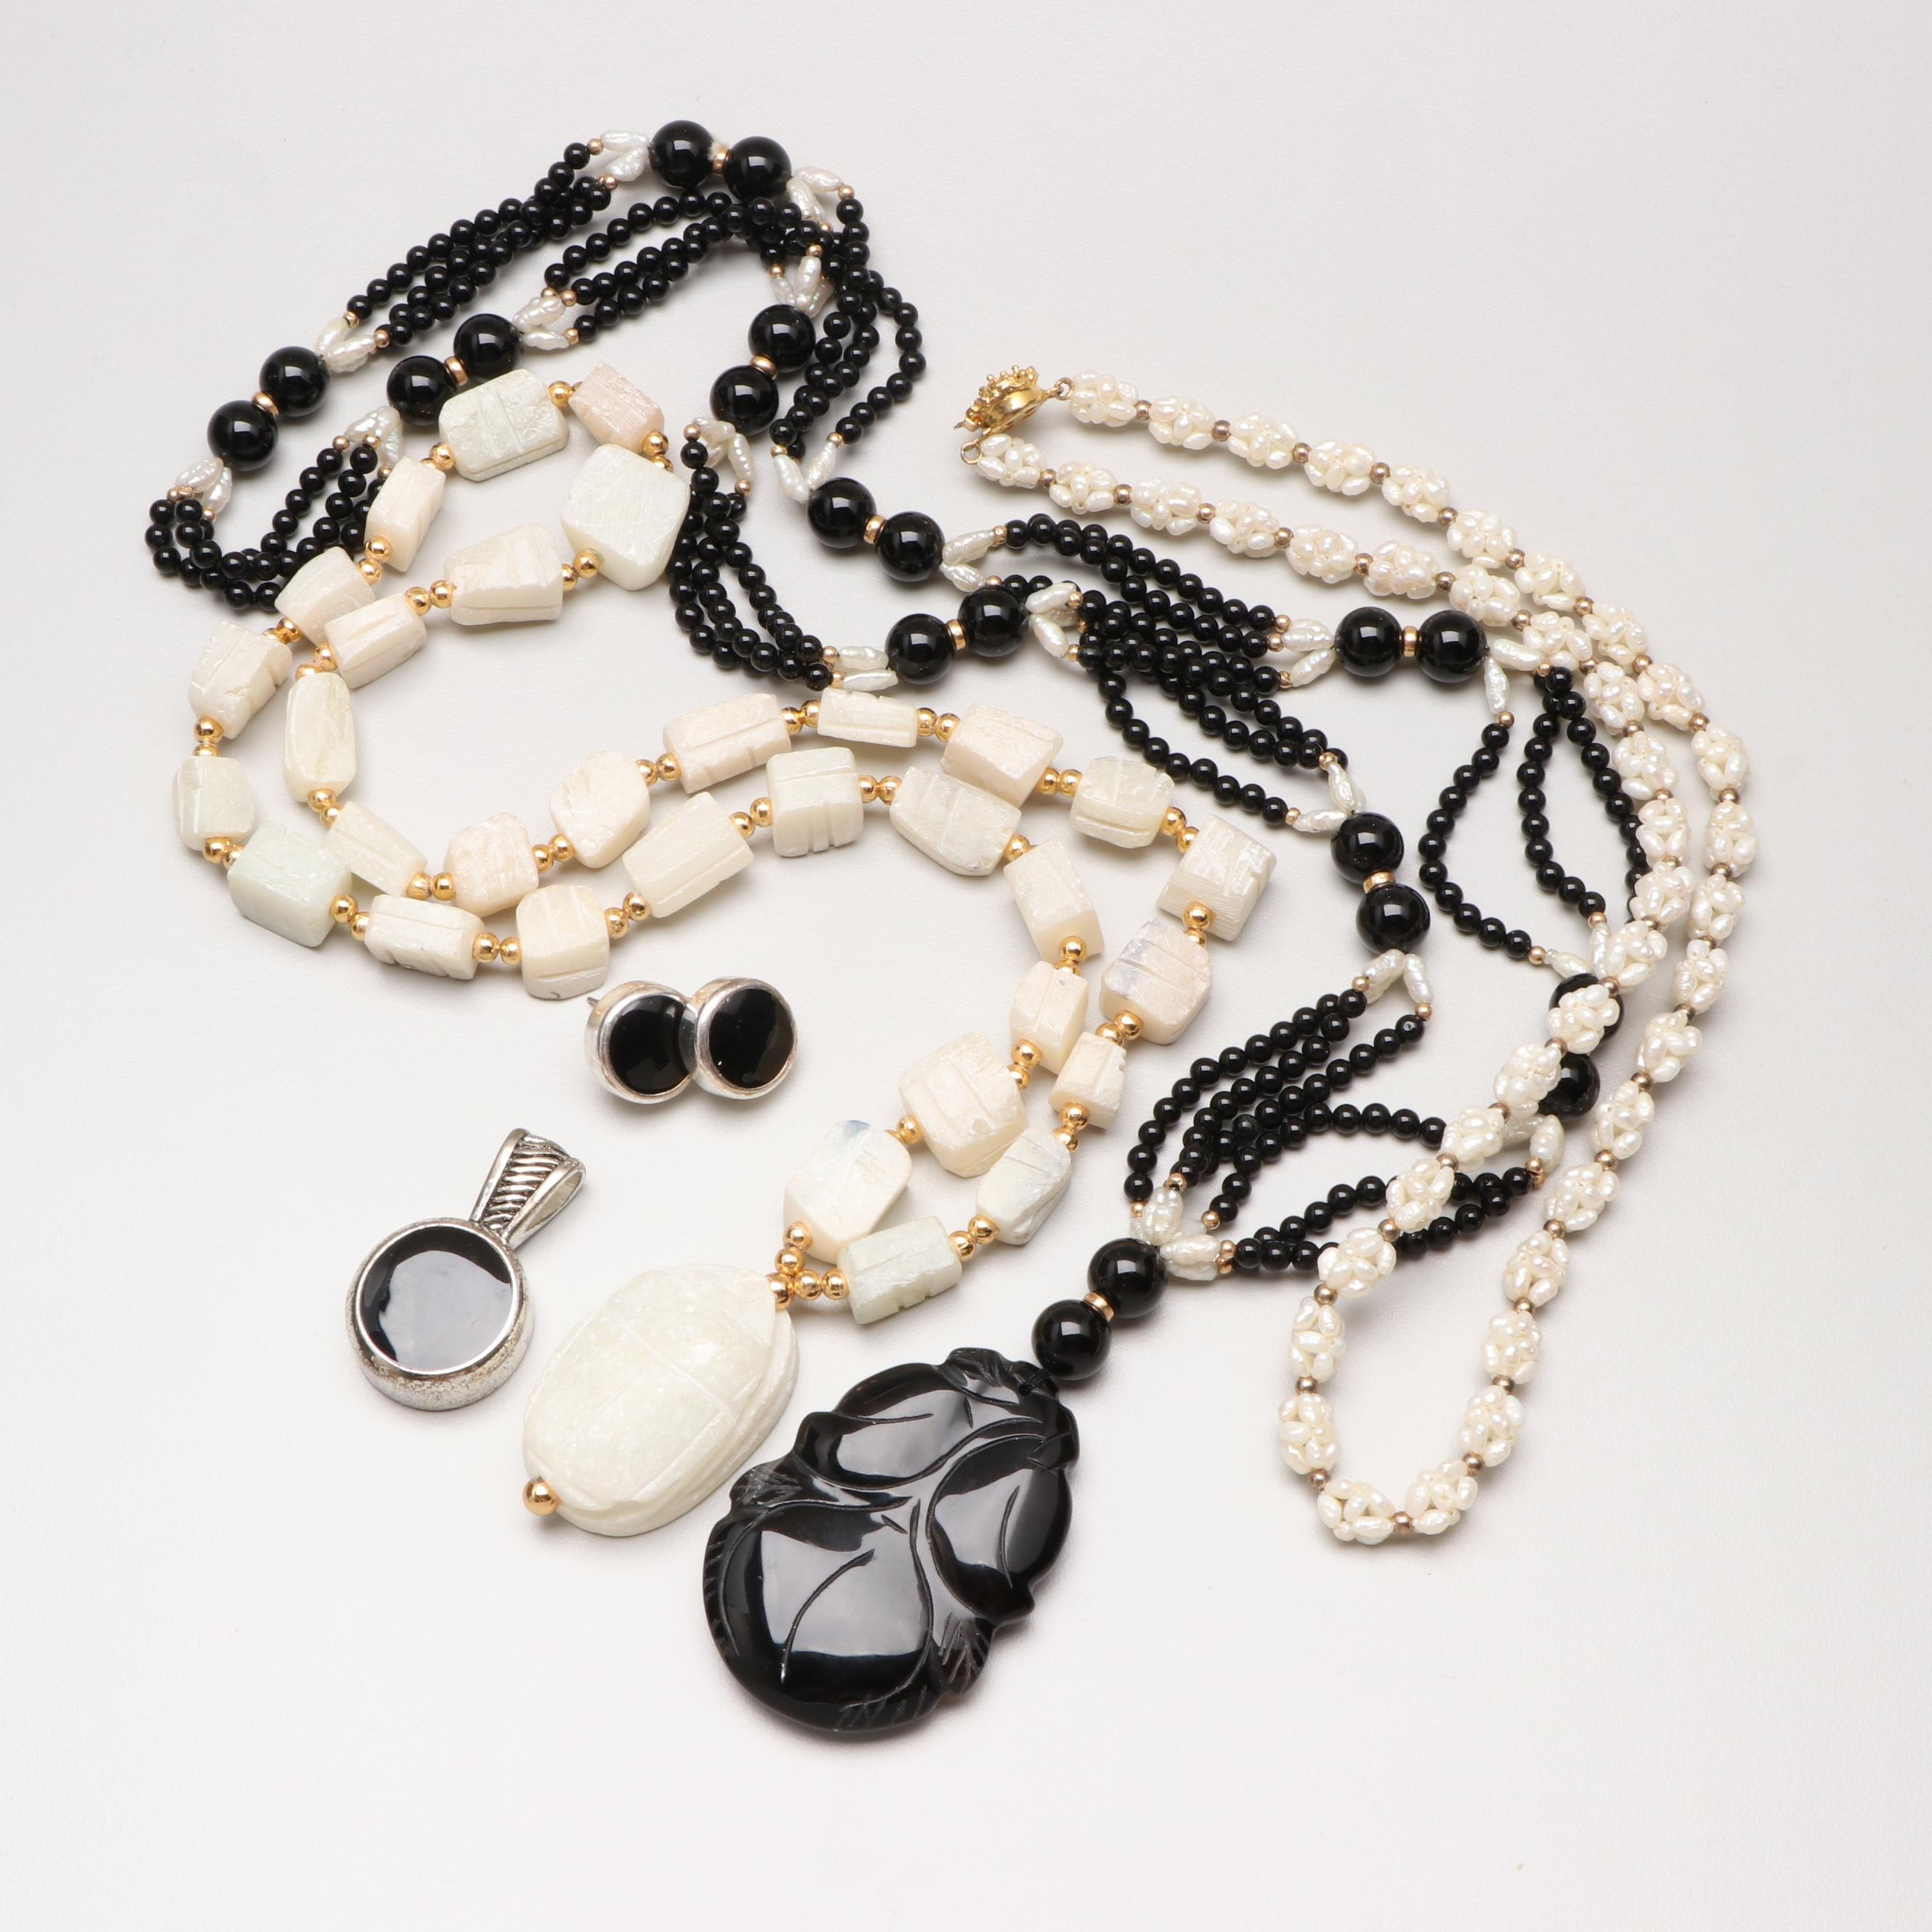 Assorted Costume Jewelry Including Talc, Onyx and Cultured Pearl